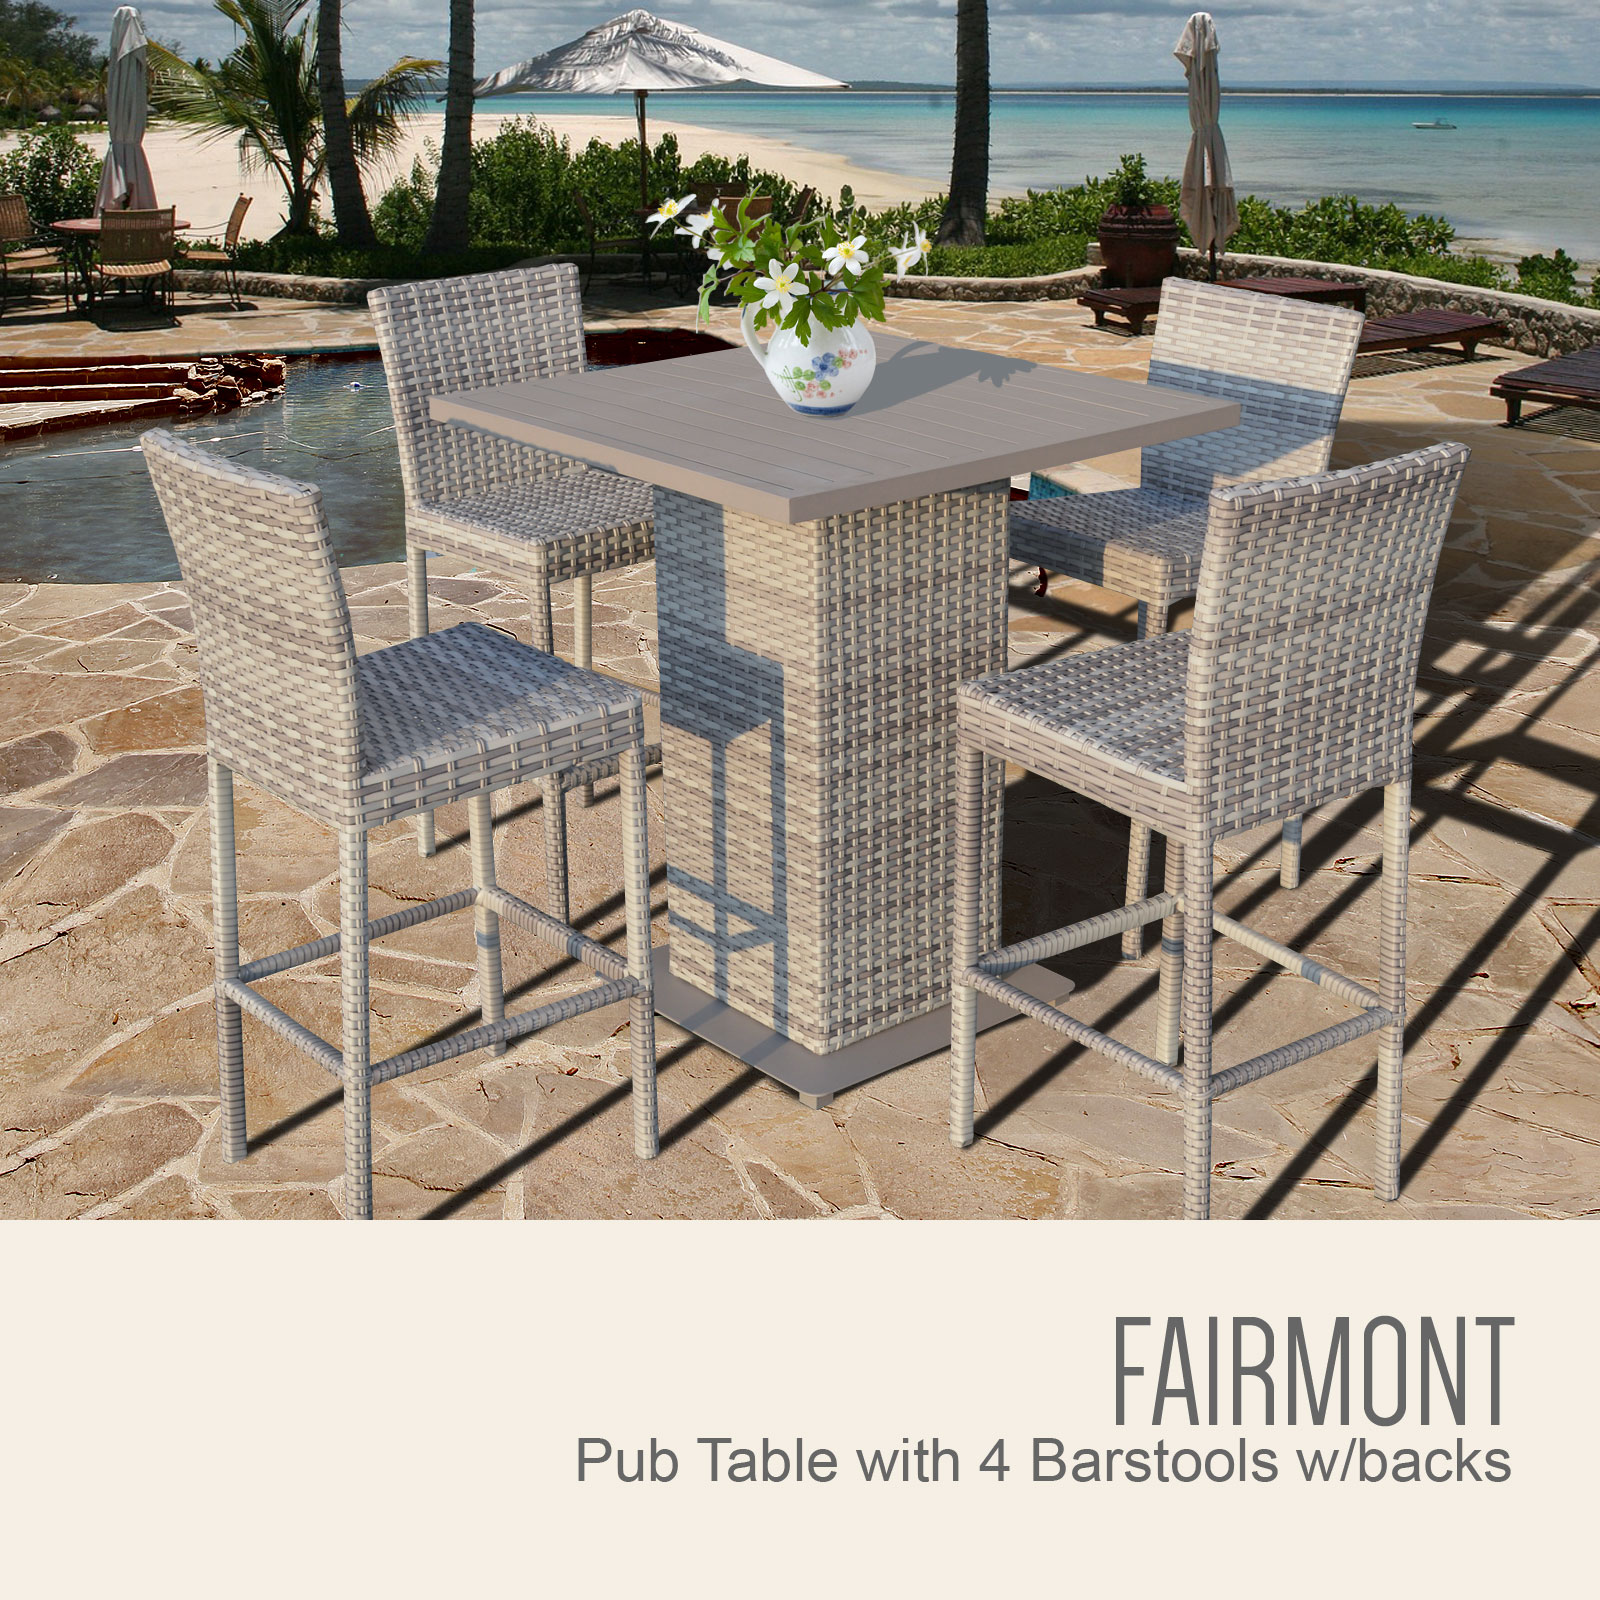 Fairmont Pub Table Set With Bar Stools 5 Piece Outdoor Wicker Patio Furniture-Color:Vanilla Cré by TK Classics